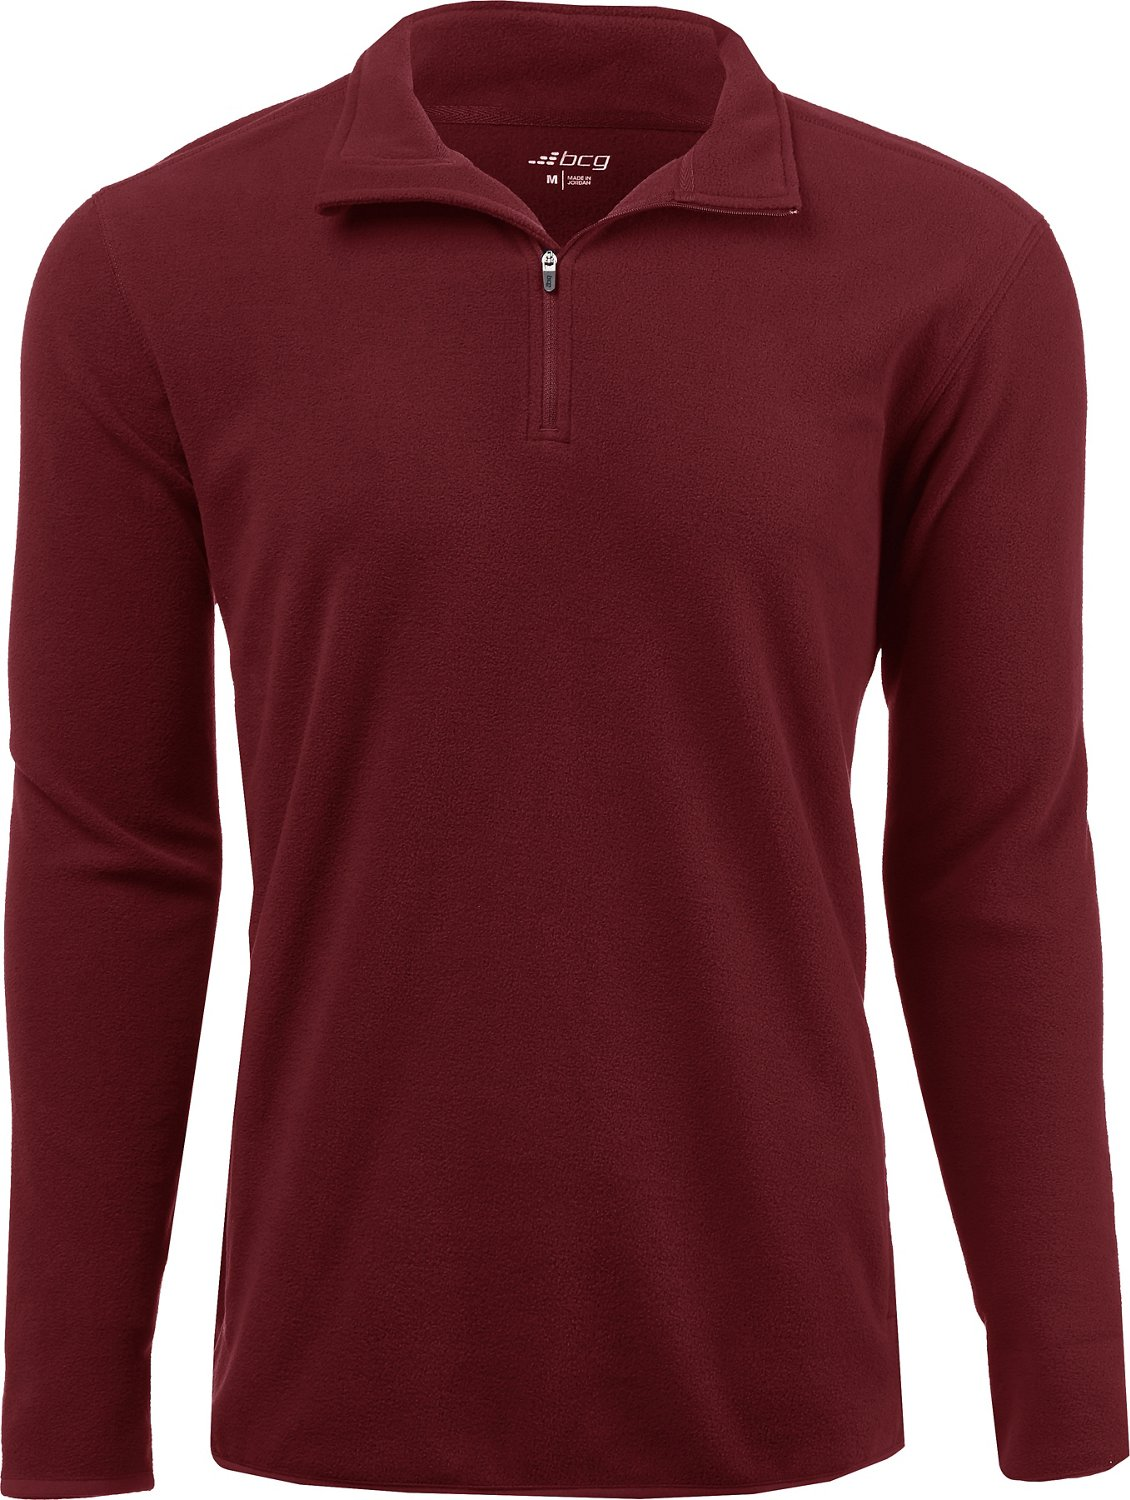 f7554c5a2c774 Display product reviews for BCG Men's Microfleece 1/4-Zip Shirt